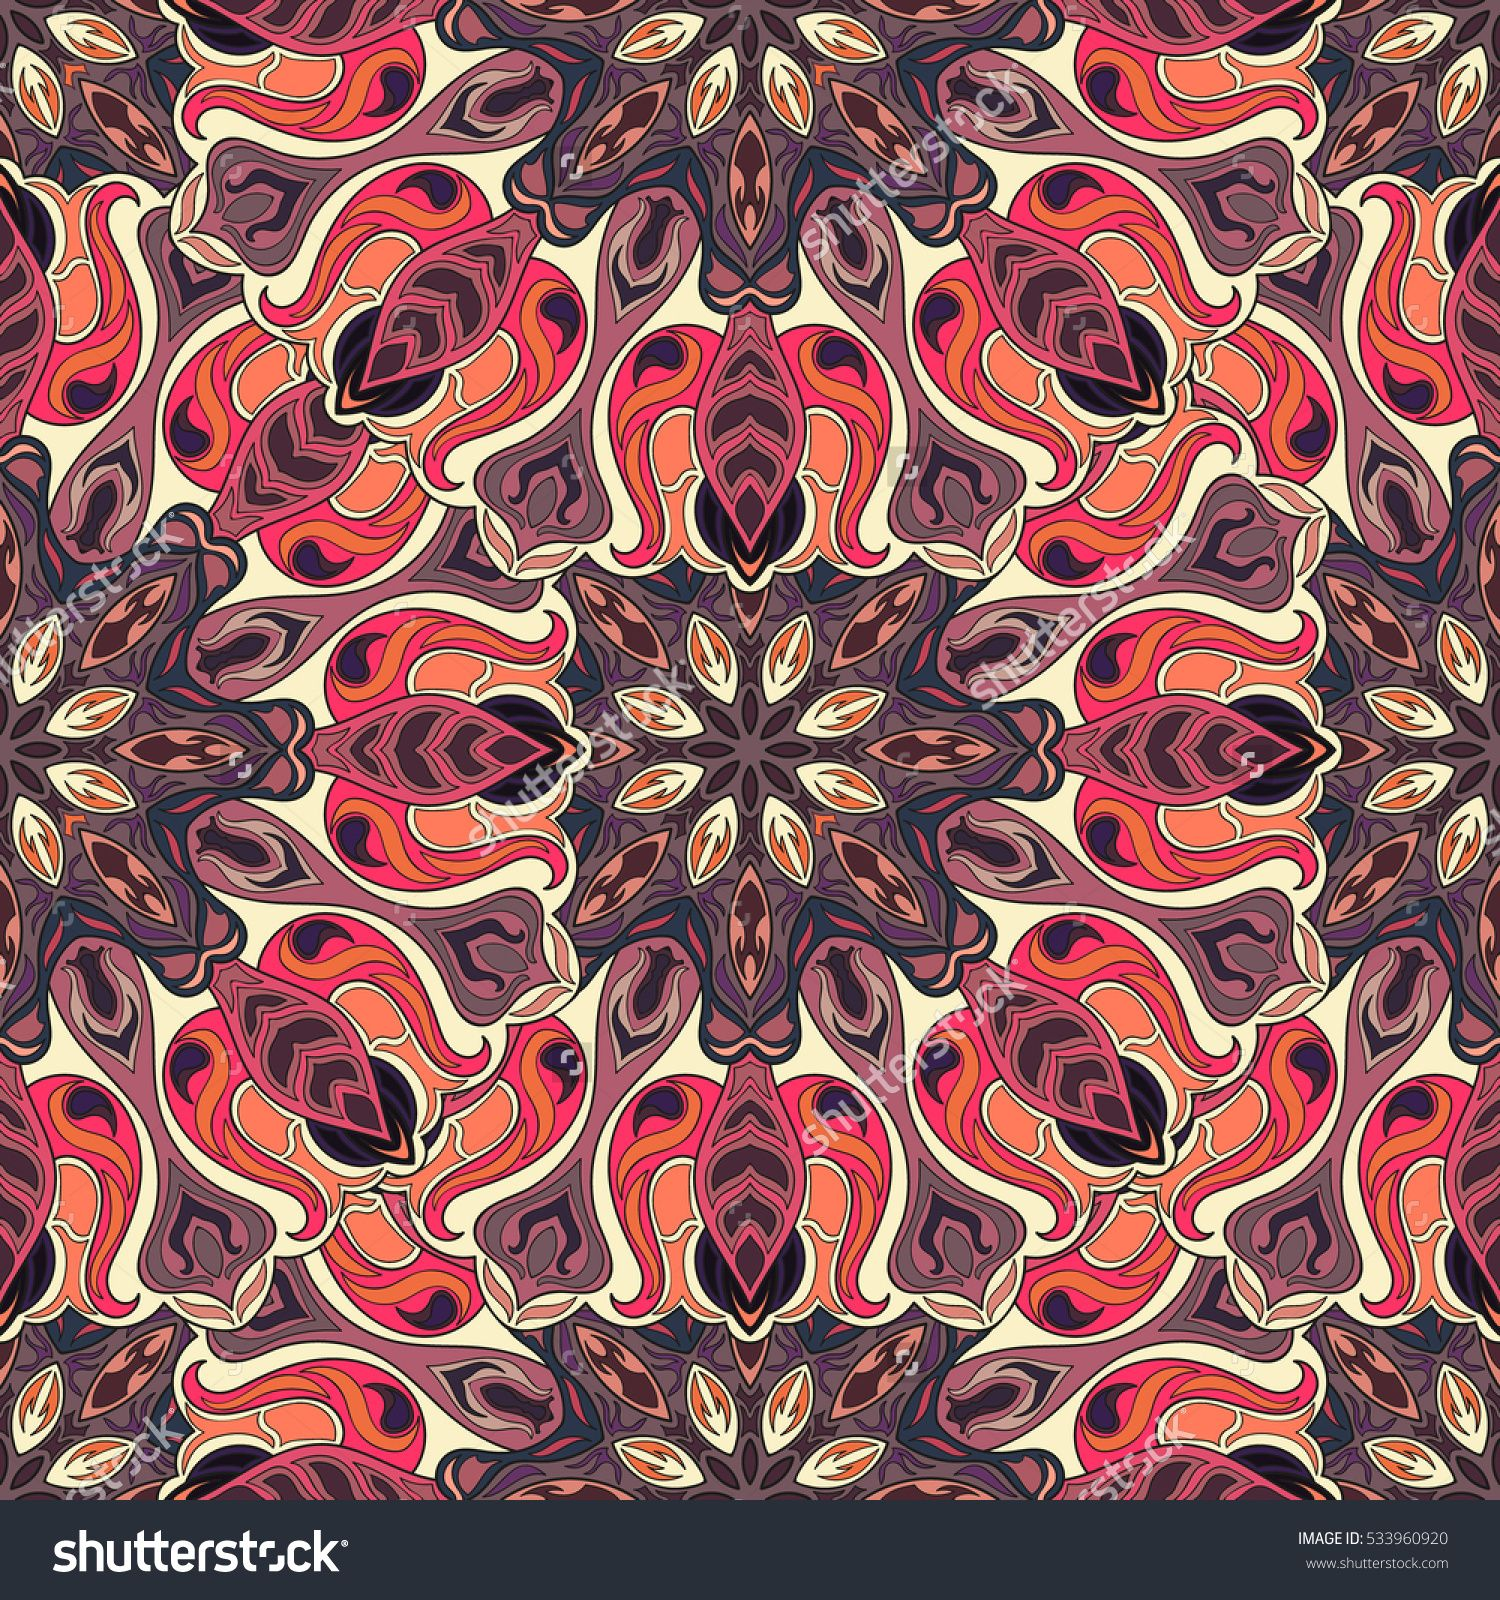 Wallpapers pattern fills web page backgrounds surface textures - Ornate Floral Seamless Texture Endless Pattern With Vintage Mandala Elements Can Be Used For Page Backgroundseamless